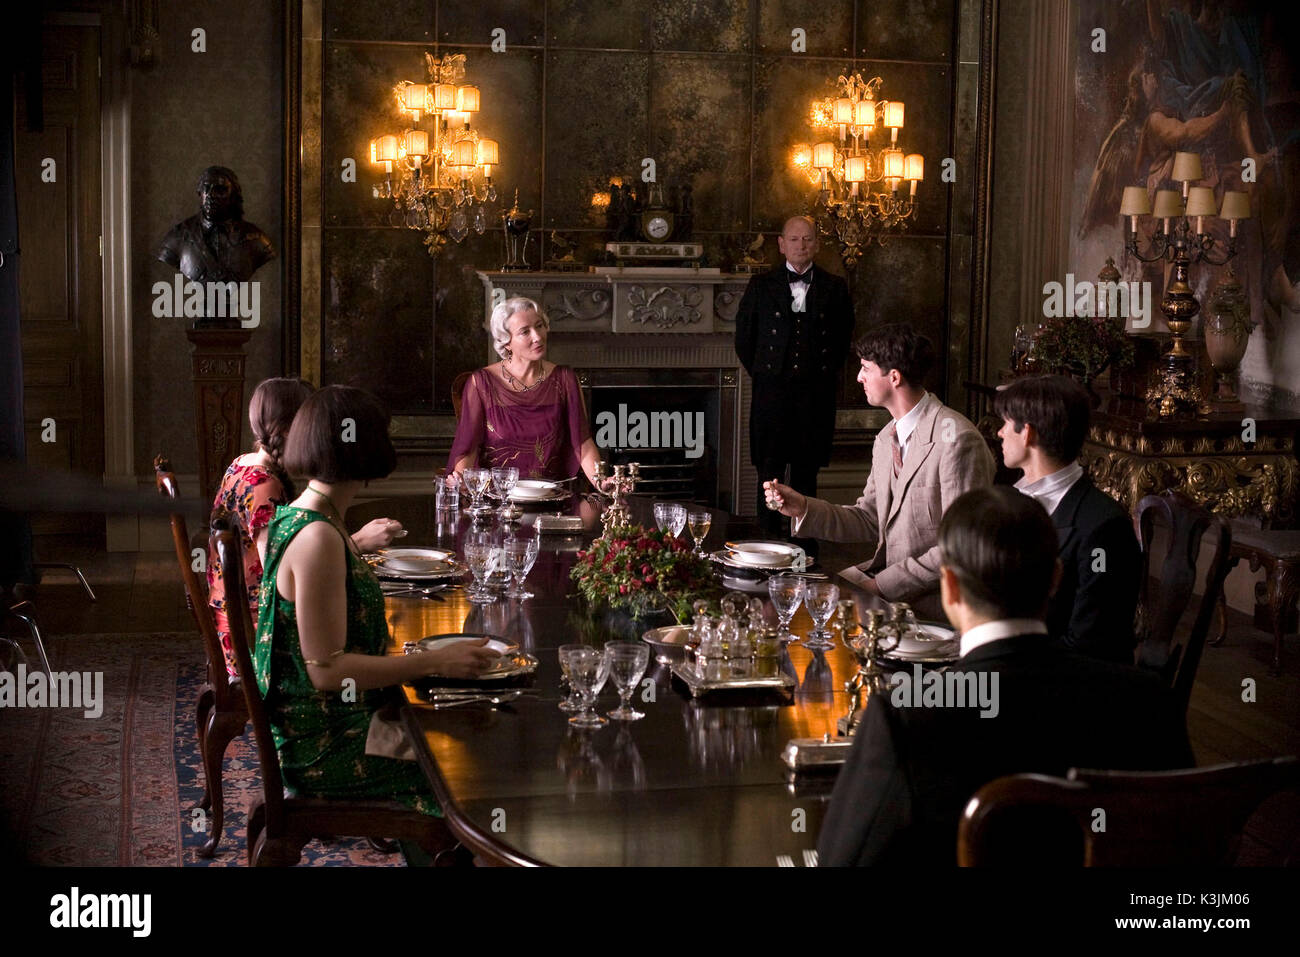 BRIDESHEAD REVISITED FELICITY JONES as Lady Cordelia Flyte, HAYLEY ATWELL as Julia Flyte, EMMA THOMPSON as Lady Marchmain, MATTHEW GOODE as Charles Ryder, BEN WHISHAW as Sebastian Flyte, ED STOPPARD as Bridley Flyte     Date: 2008 - Stock Image